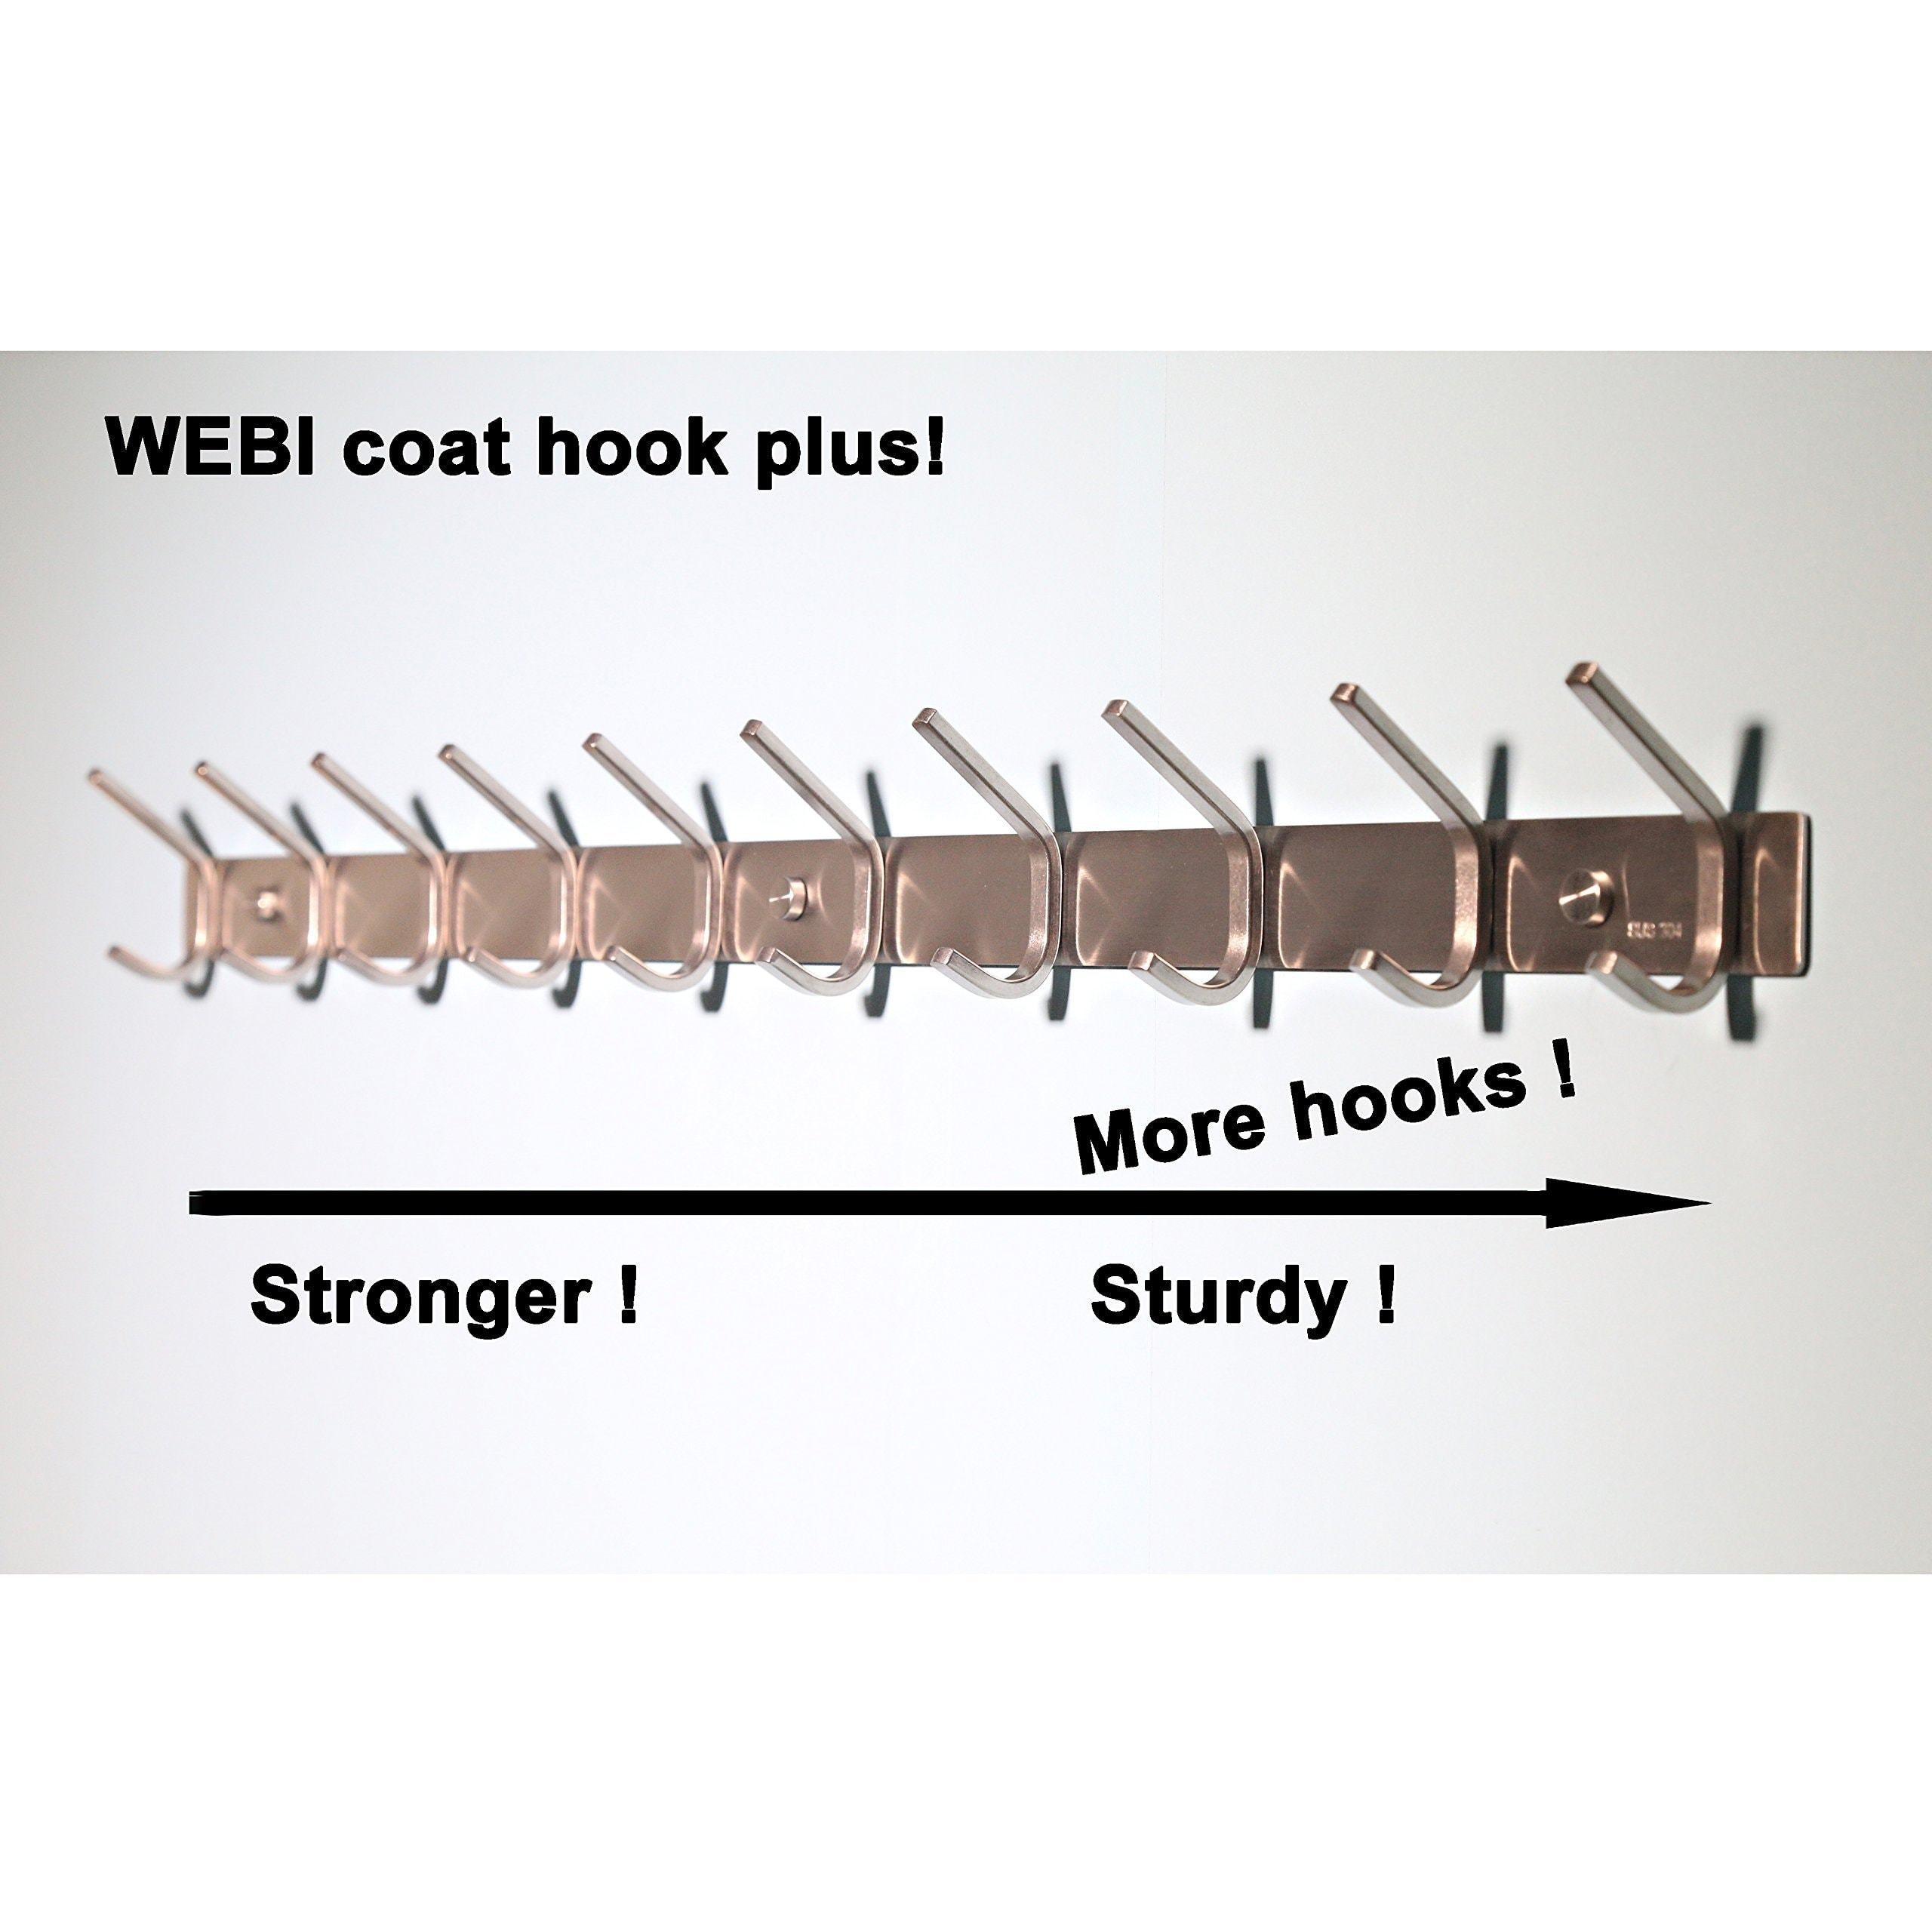 Top rated 10 hooks webi heavy duty stainless steel 304 hook rail coat rack with 10 hooks satin finish great home storage organization for bedroom bathroom foyers hallways 2packs